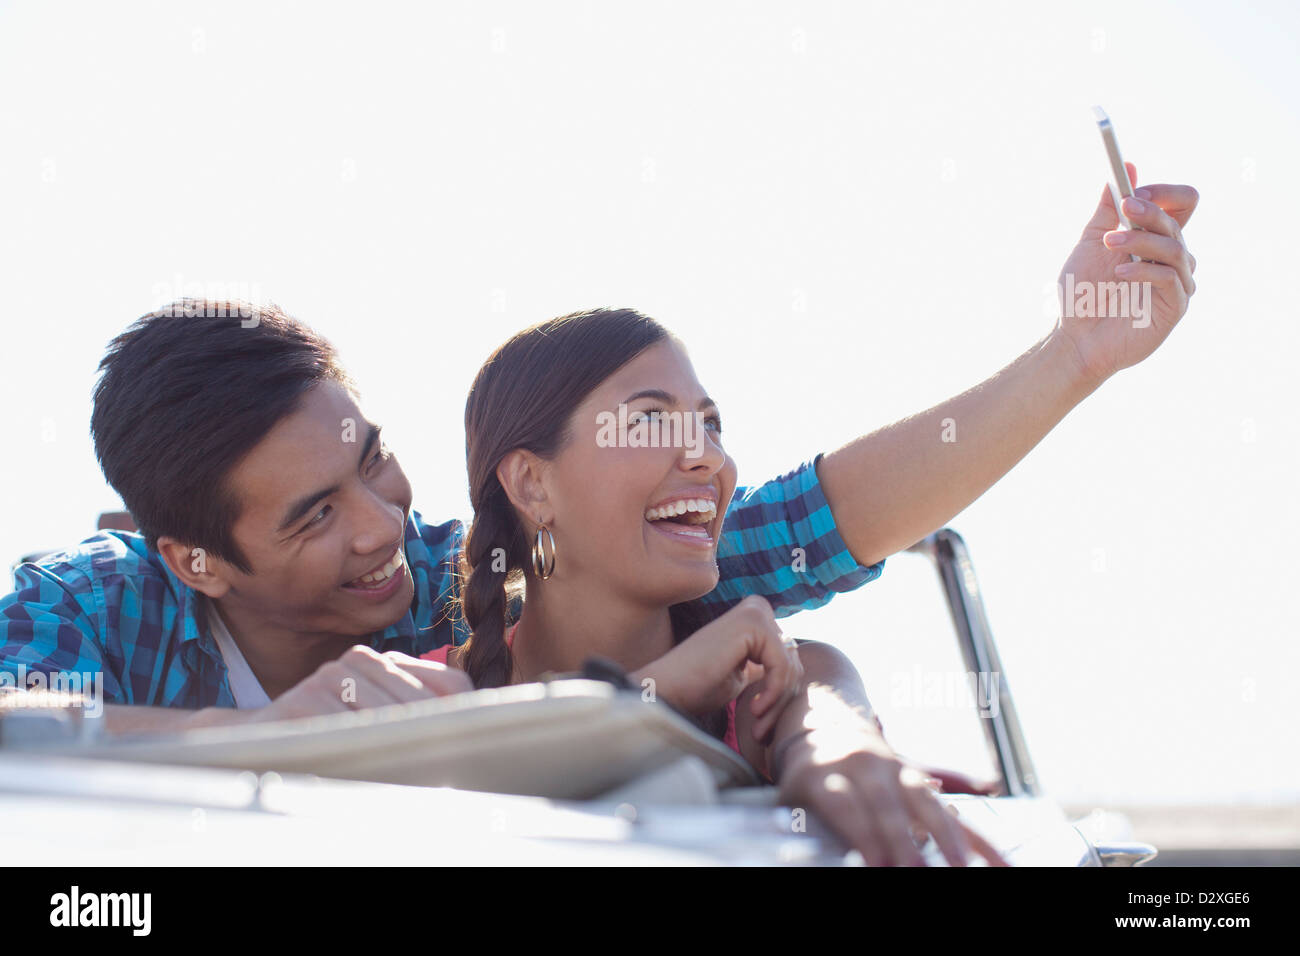 Smiling couple taking picture of themselves - Stock Image